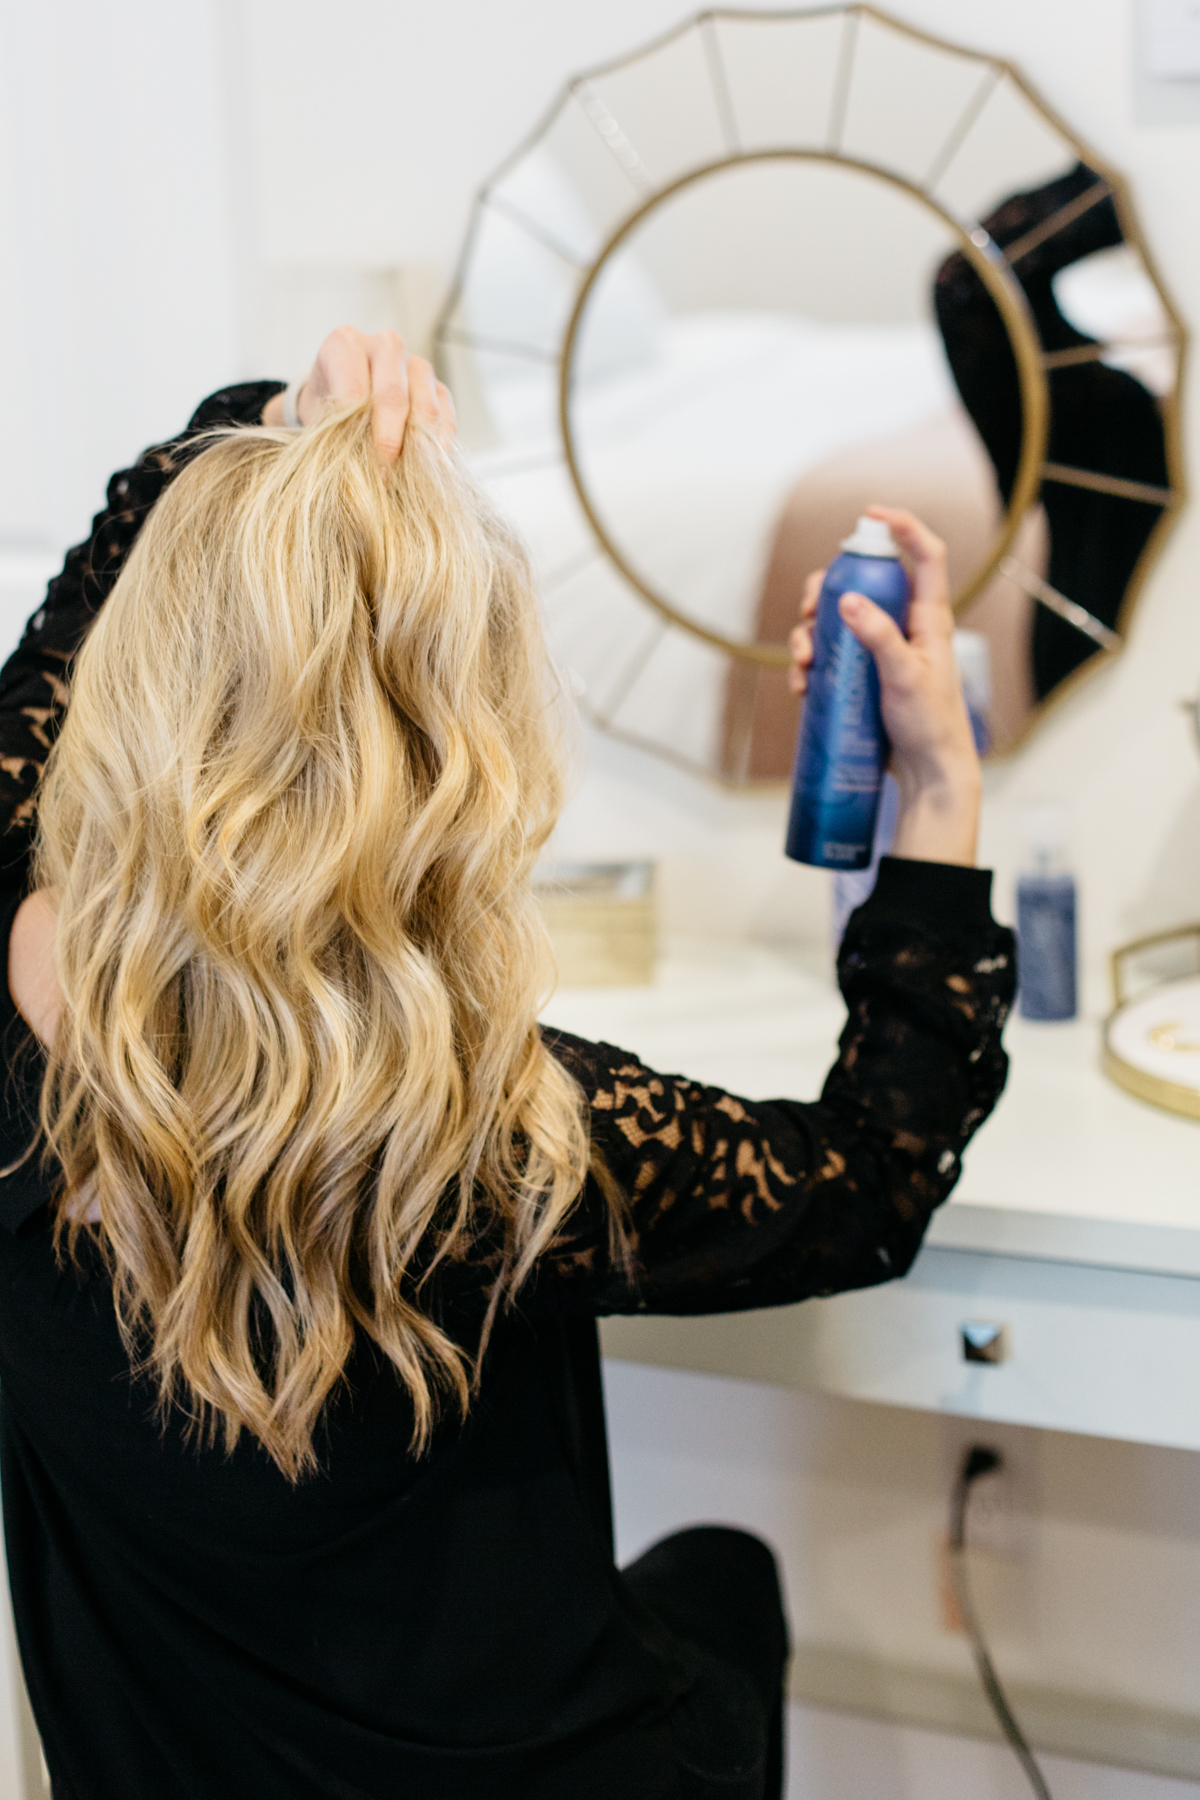 Frederic Fekkai Styling Products Blonde Buys For Hair